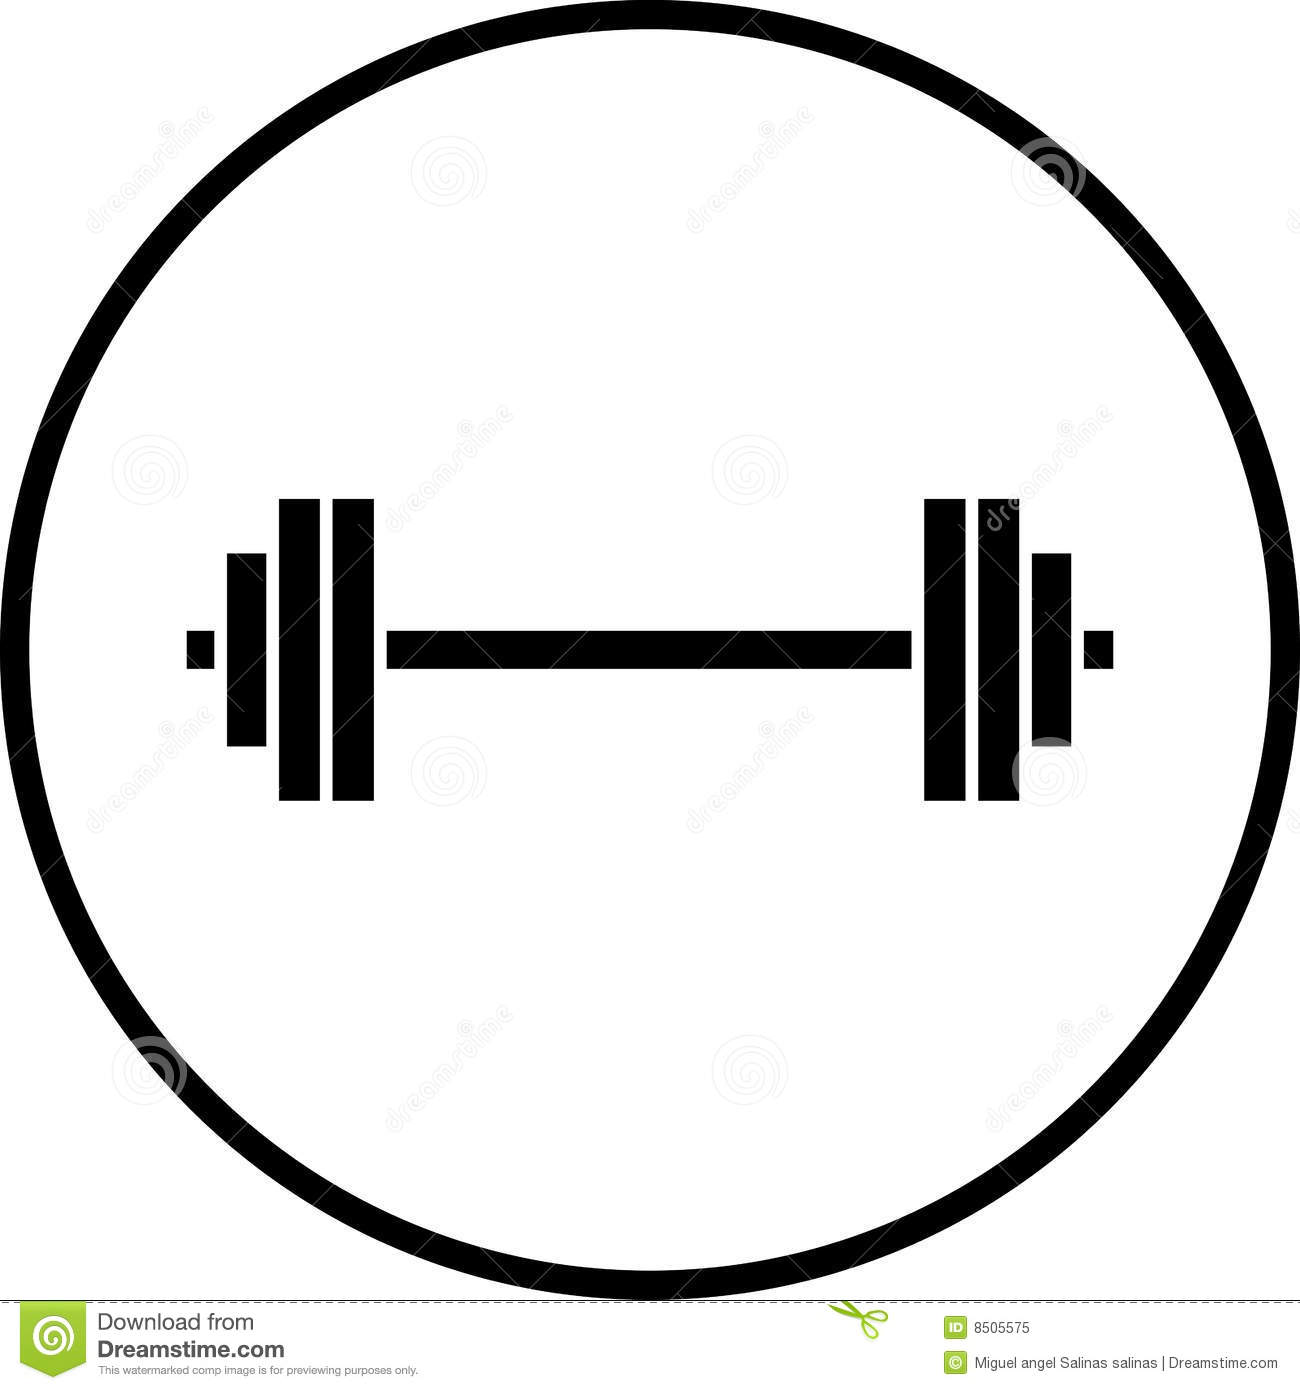 Weights Clipart Vector Barbell Gym Weights